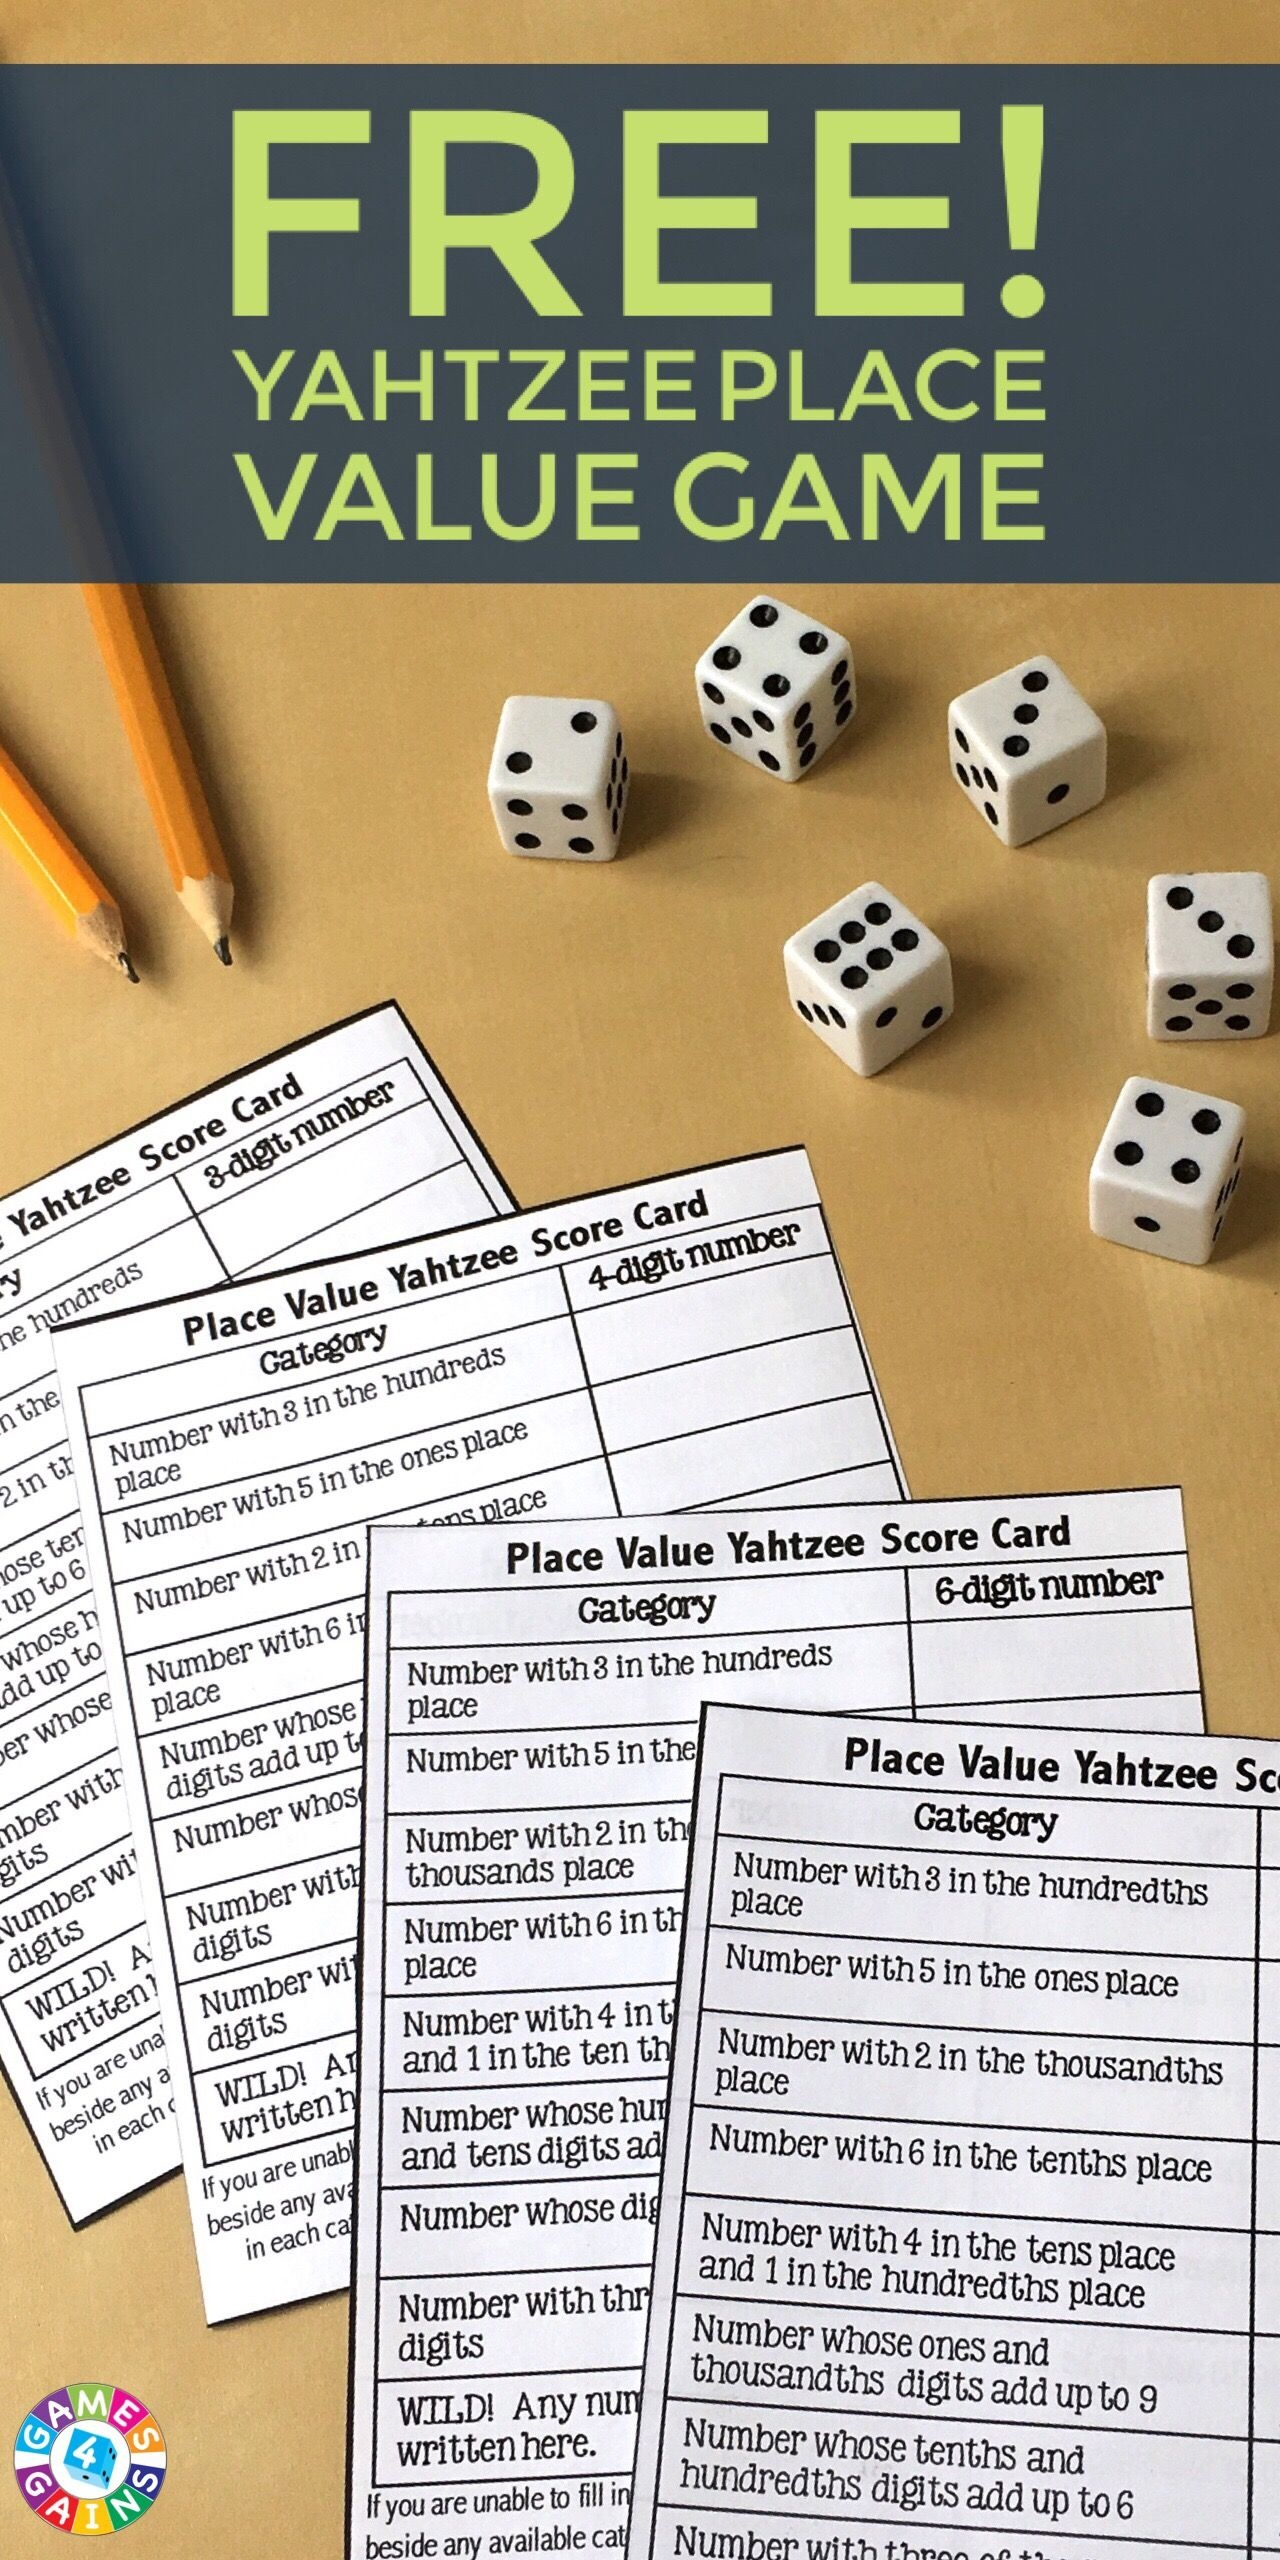 Score Some Points With Place Value Yahtzee! | Math | Math, Fifth - Place Value Game Printable Free